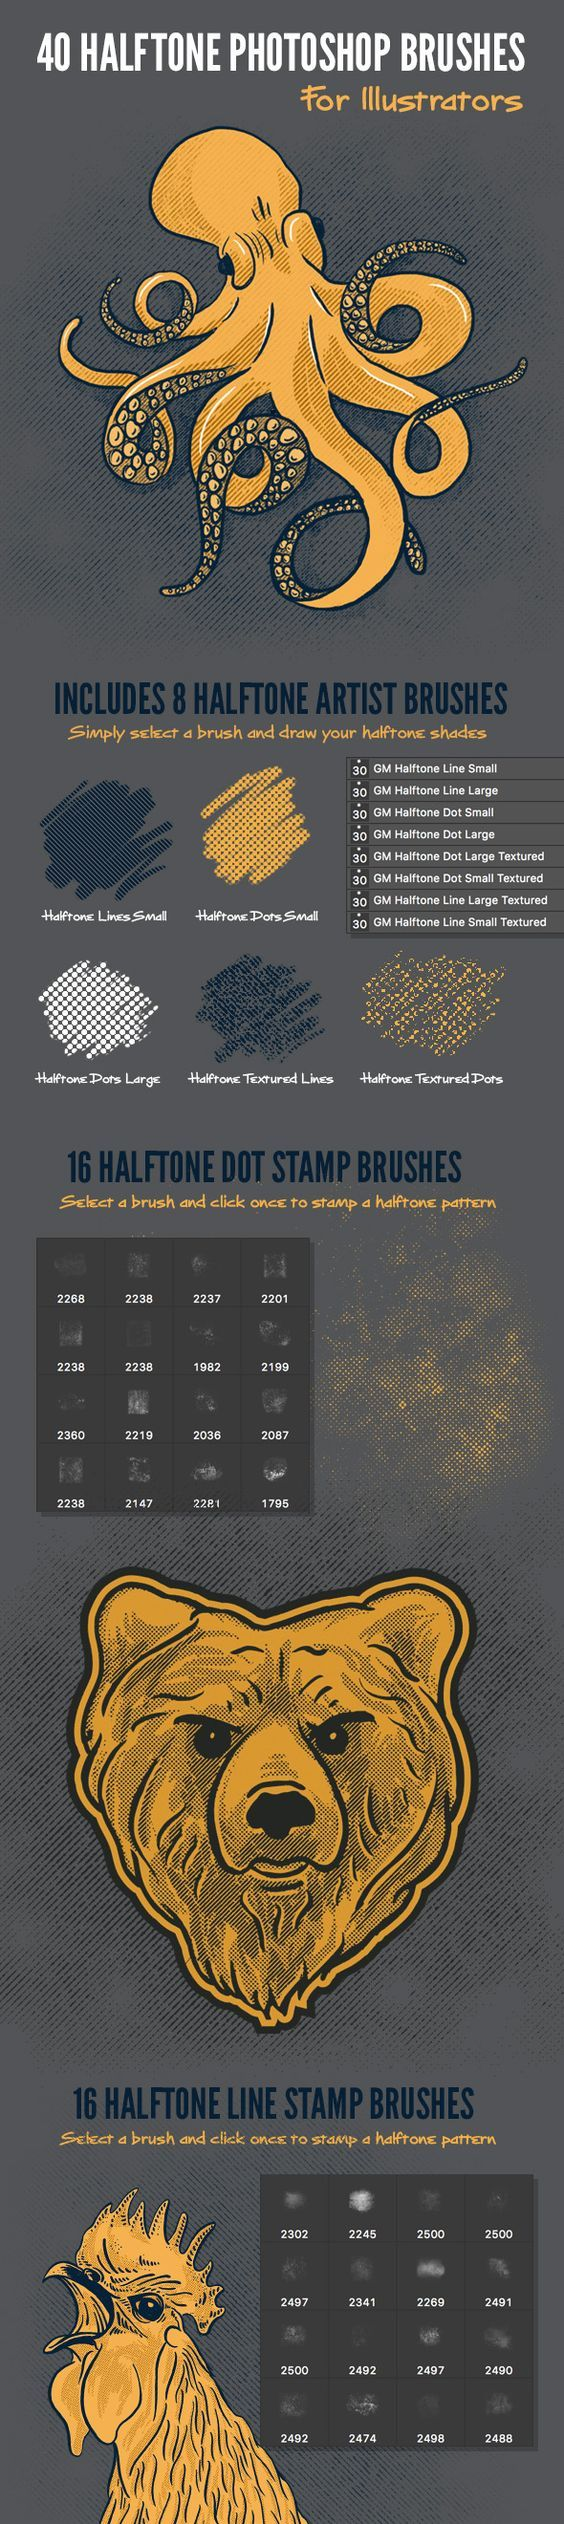 Nothing gives your artwork a vintage, screen printed, look like halftone patterns. Now you can add them quickly and easily using this handy set of brushes for Photoshop #illustrator #lines #old • Available here → http://graphicriver.net/item/40-halftone-illustration-brushes-for-photoshop/15765092?ref=pxcr